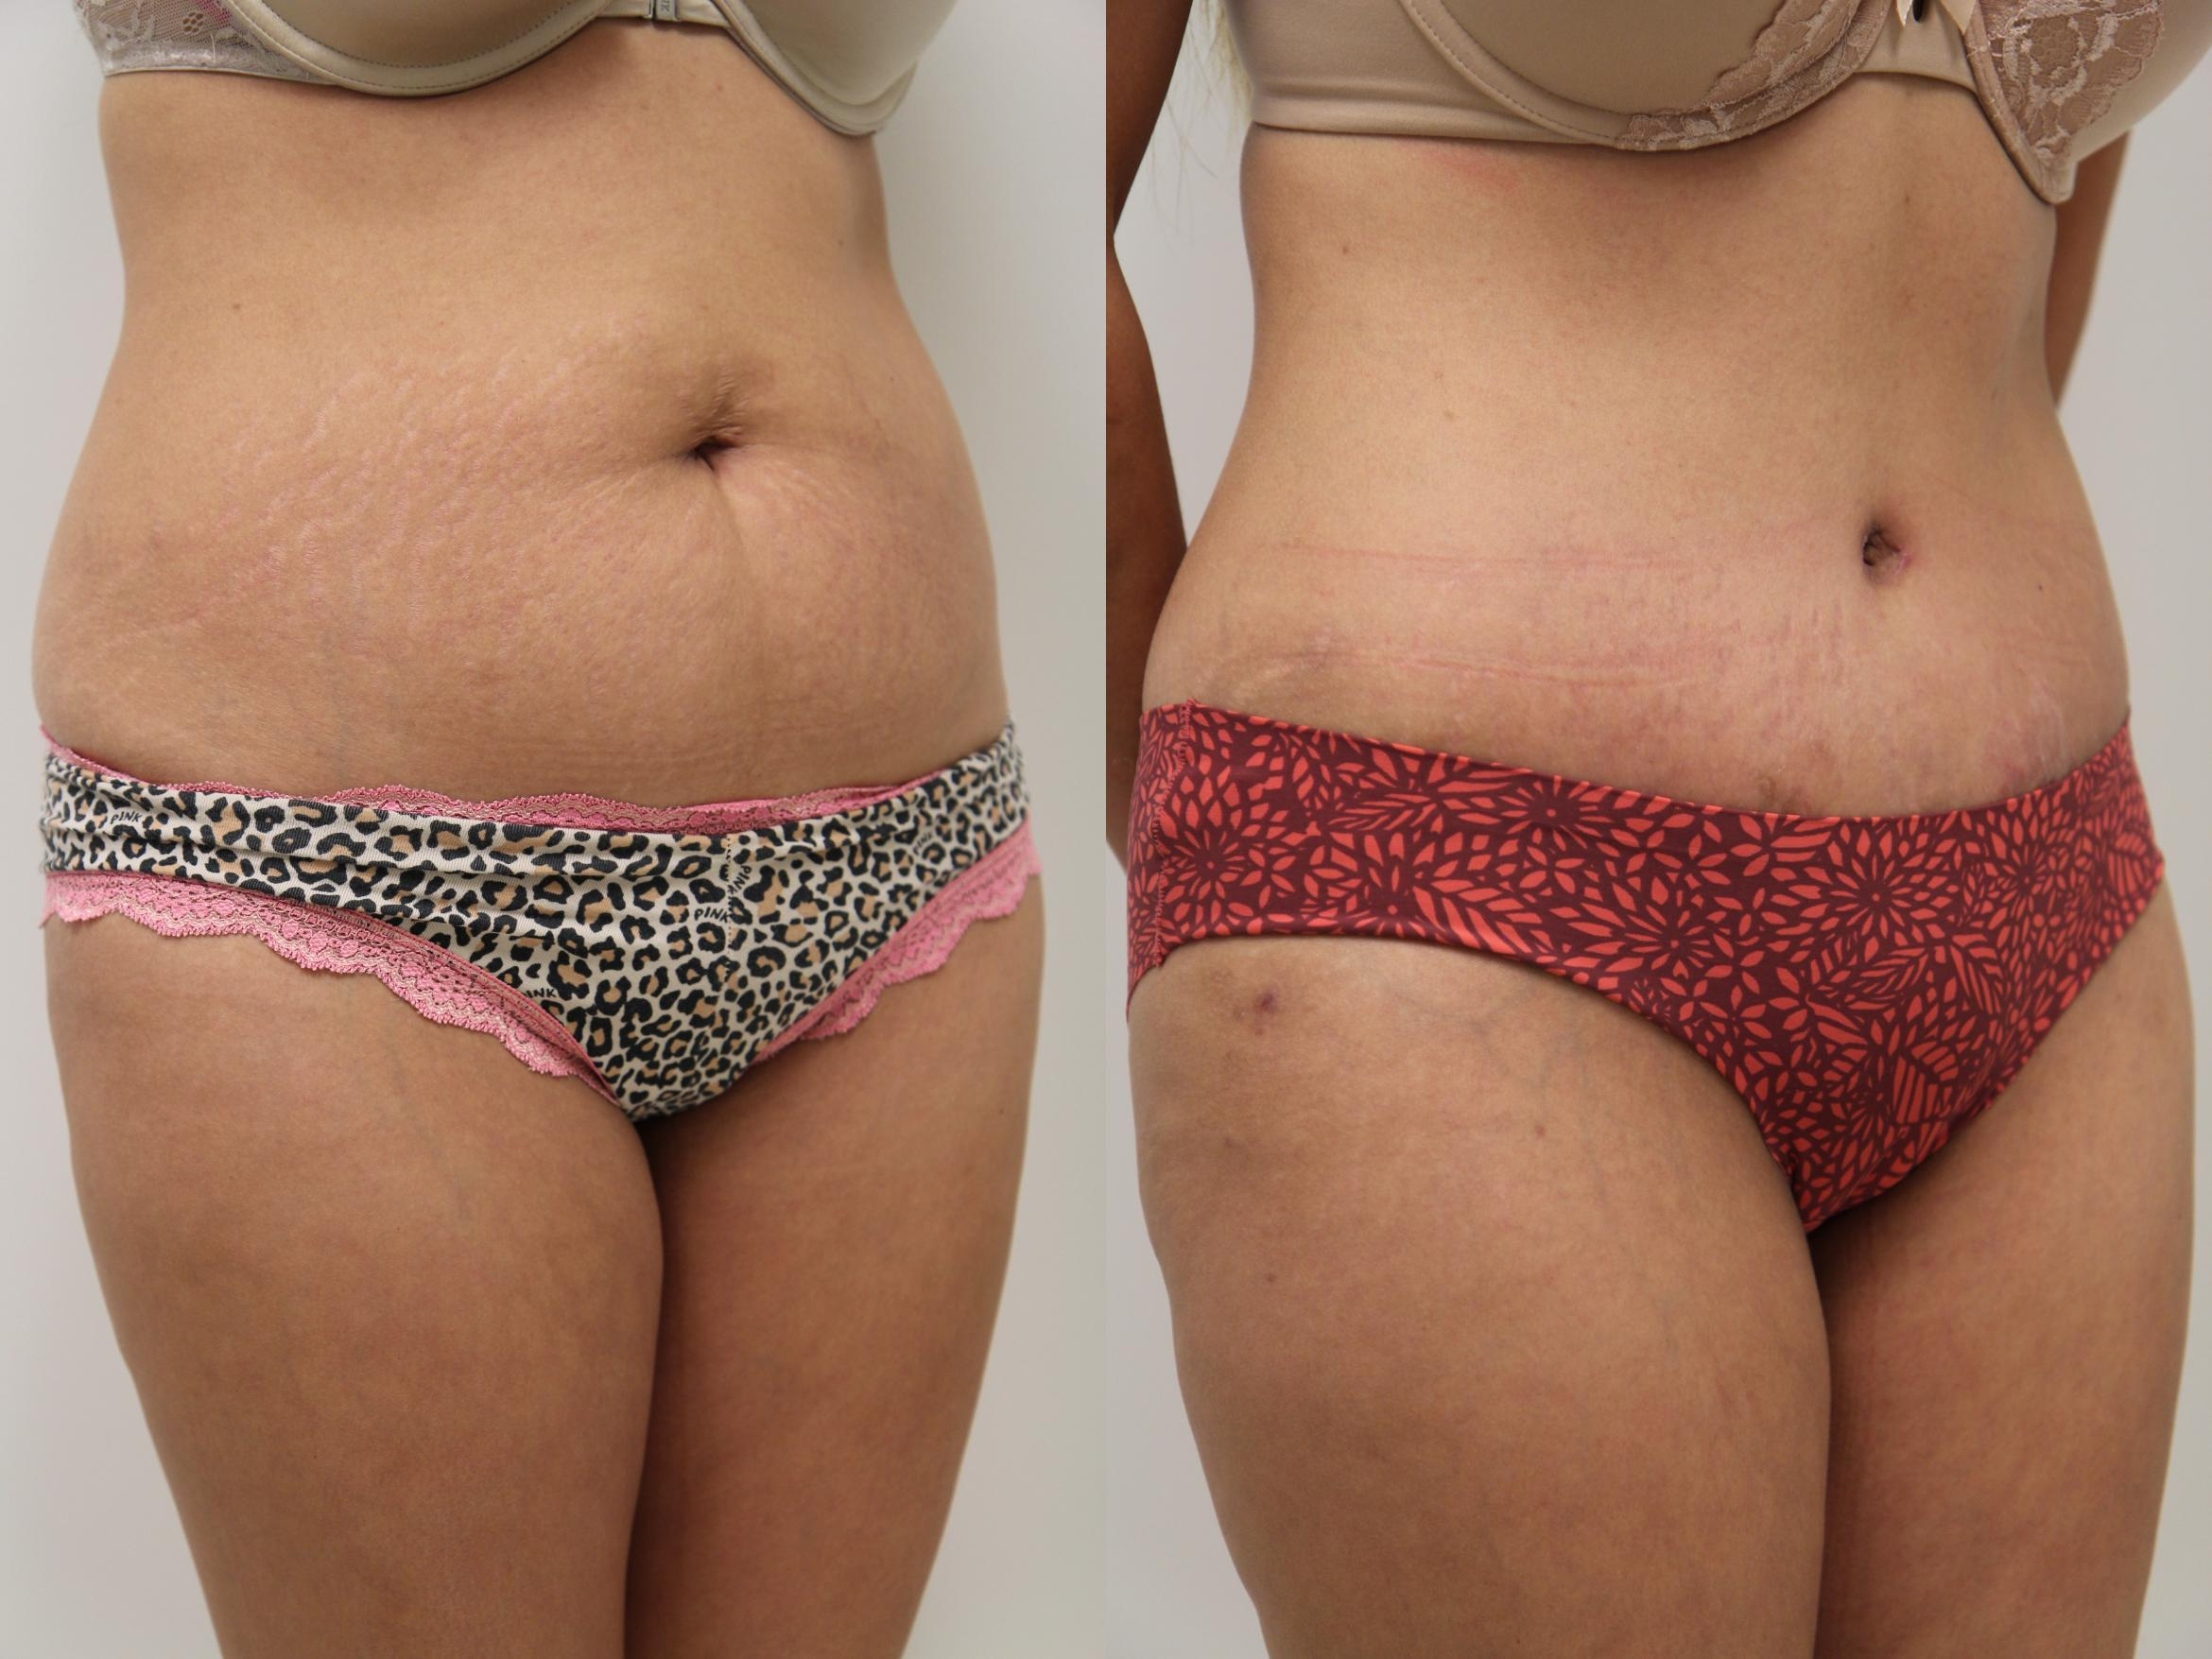 Tummy Tuck (Abdominoplasty) Case 66 Before & After View #2 | Gilbert, AZ | Dr. Josh Olson: Advanced Plastic Surgery Institute